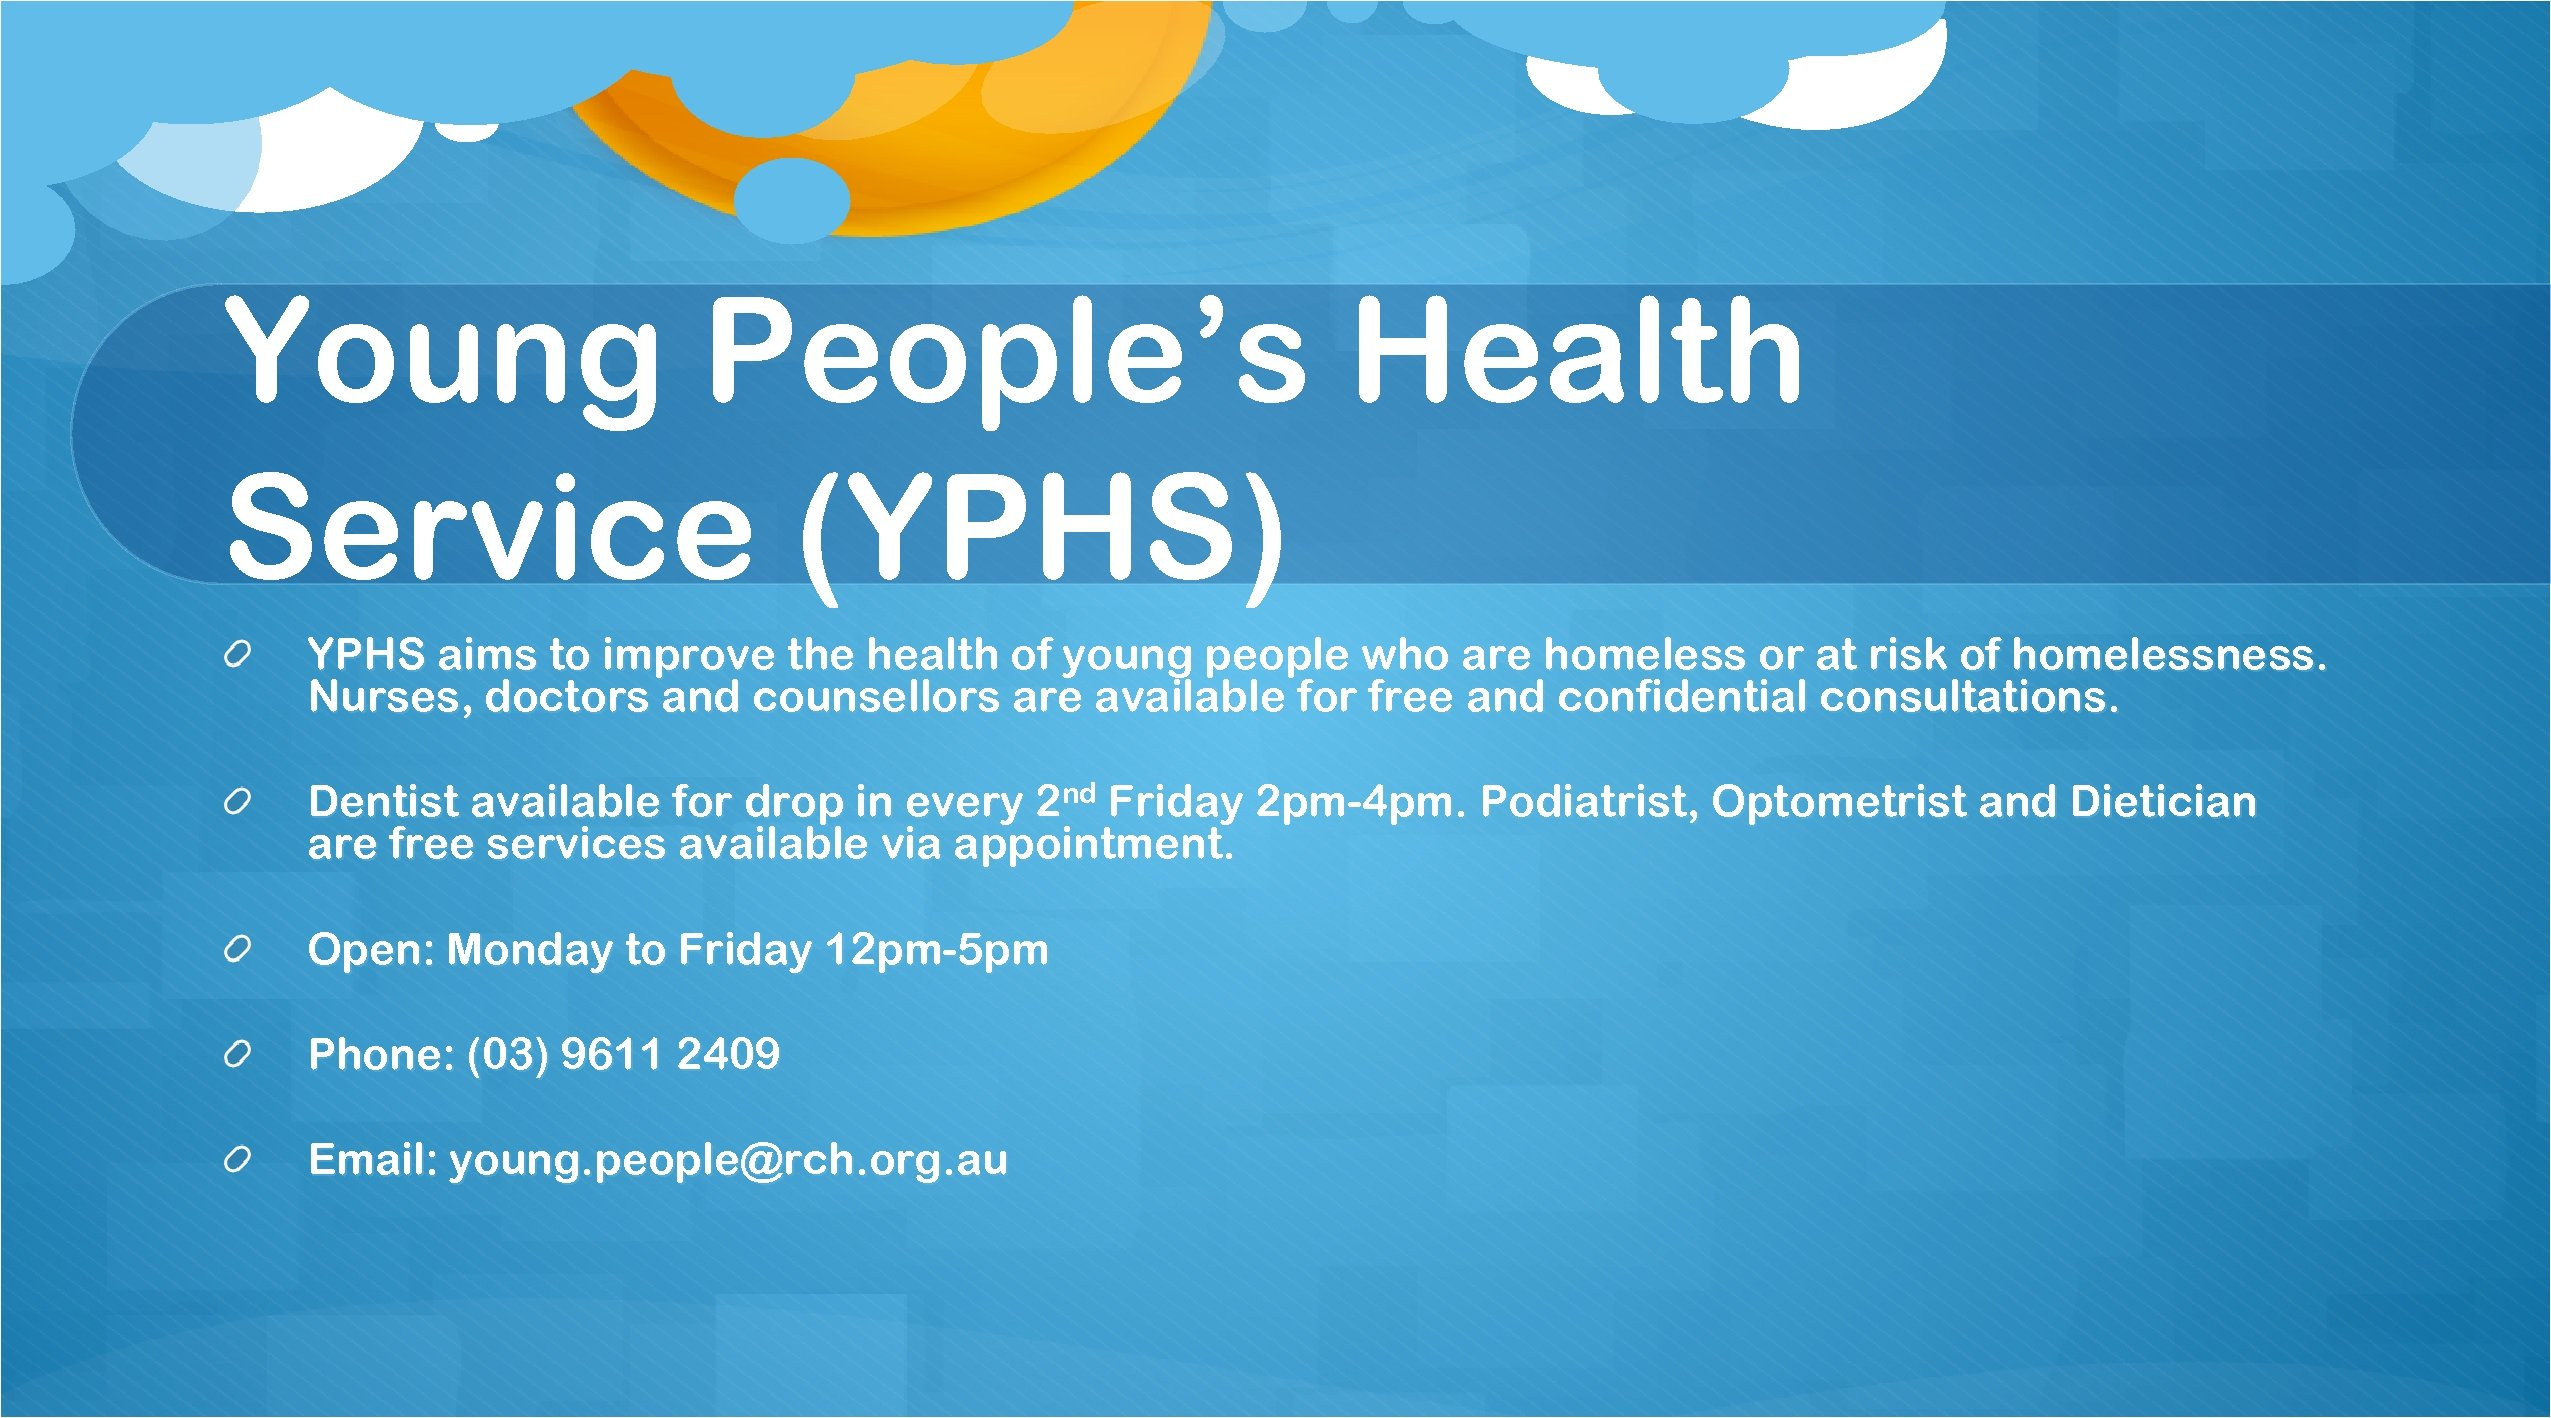 Young People's Health Service (YPHS) YPHS aims to improve the health of young people